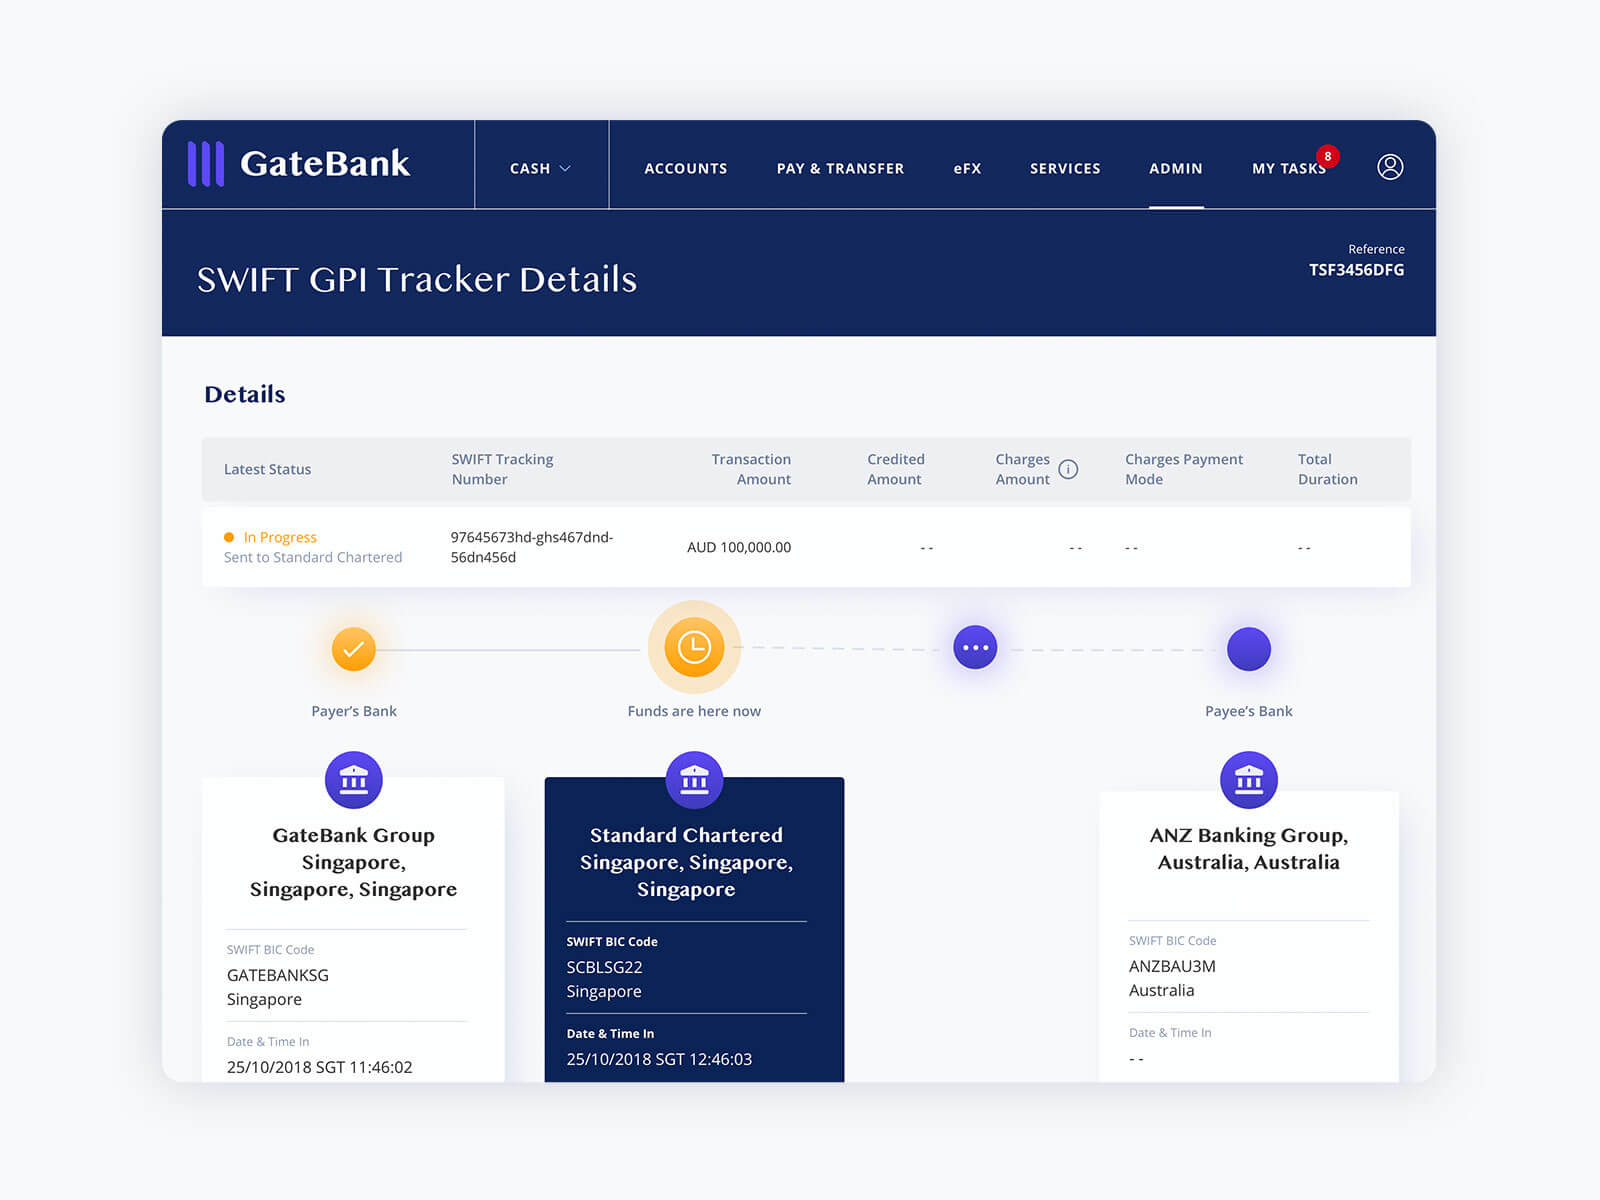 GateBank-SwiftGPI